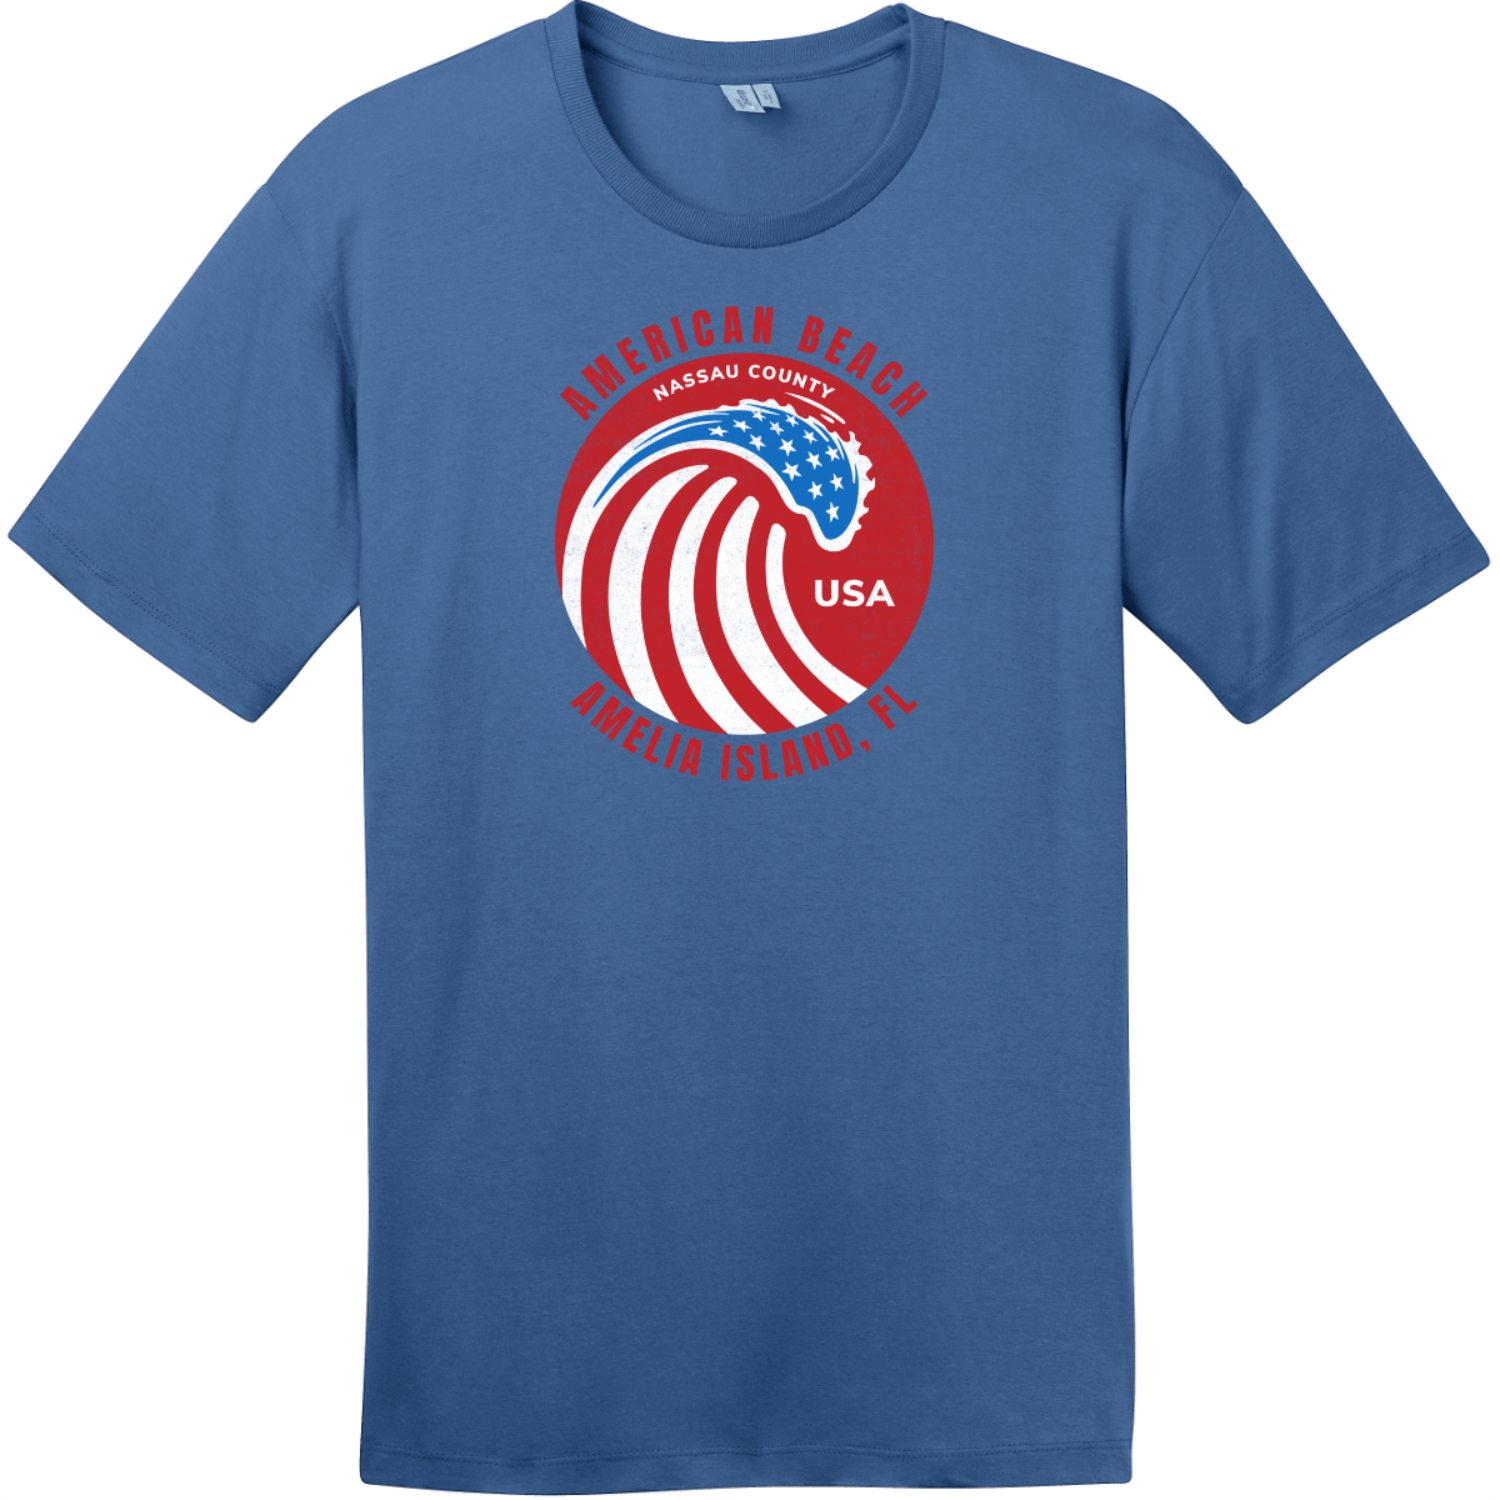 American Beach Amelia Island Vintage T-Shirt Maritime Blue District Perfect Weight Tee DT104